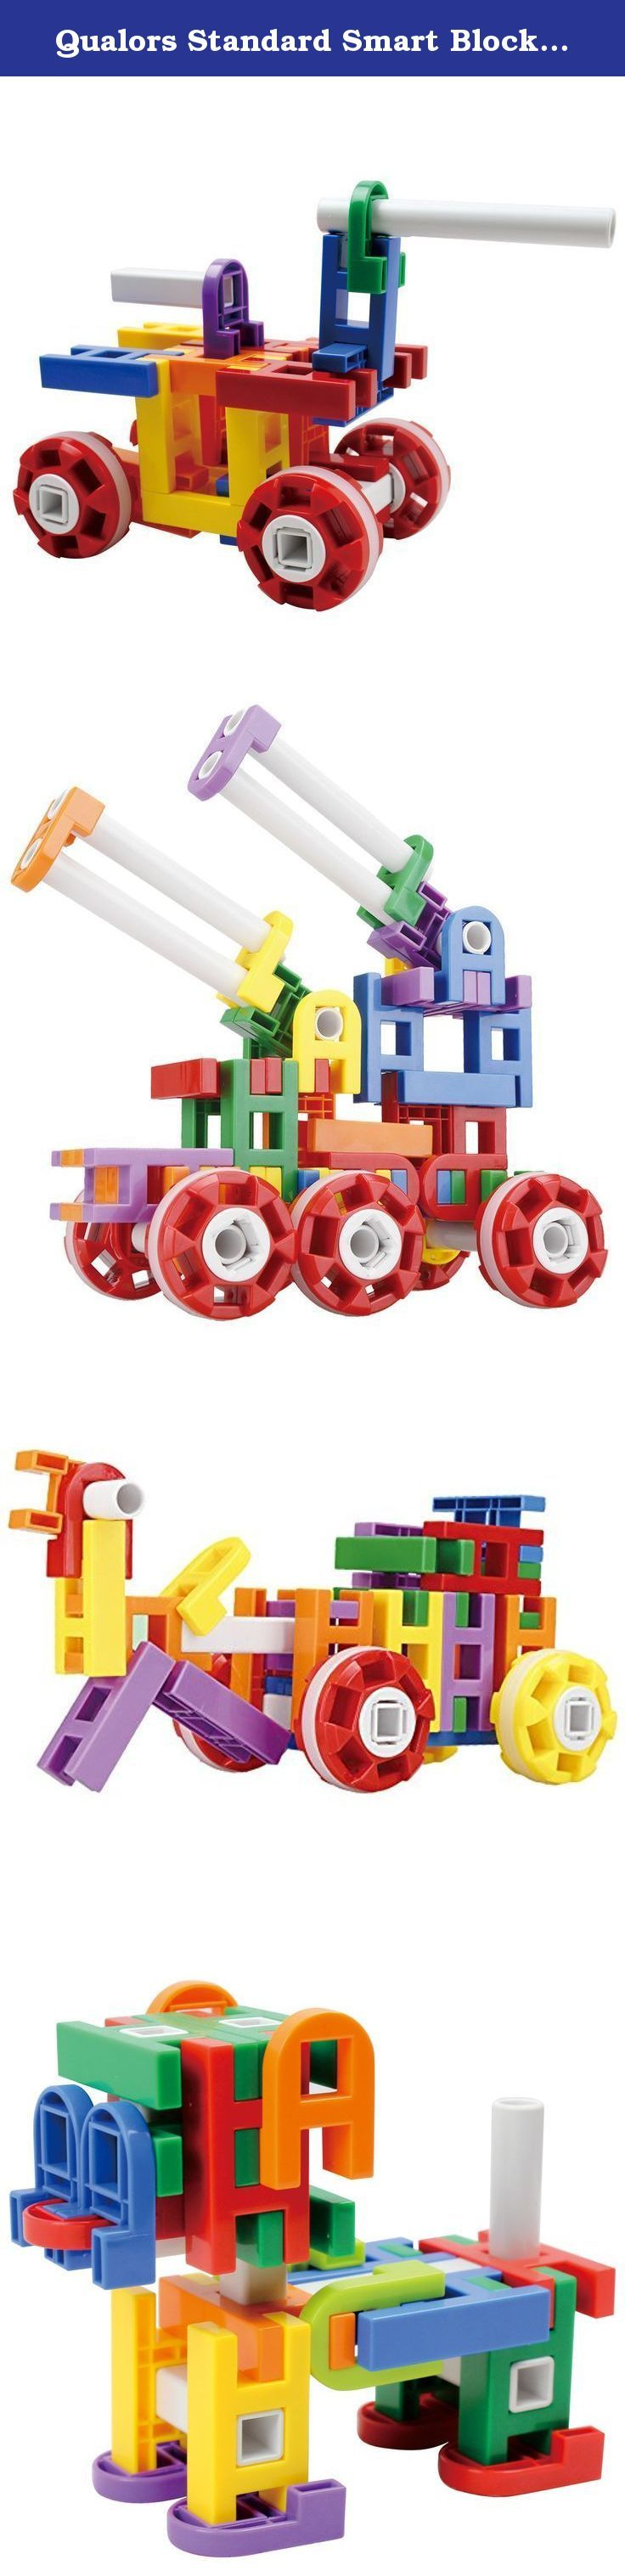 Qualors Standard Smart Blocks (Size:S) 42 Pieces Building Set with Idea Sheet (30+ Creations)   Interlocking Engineering Toys for Boys Girls   Fun Construction Blocks   Carefully Selected ABS Material. Build your Imagination with Qualors Standard Smart Blocks for Lil' Engineers! Available exclusively by Qualors Idea sheet included with many sample creations. Or imagine your own creation today! - Are your little ones becoming lazy and idle sitting in front of electronic devices for hours?…